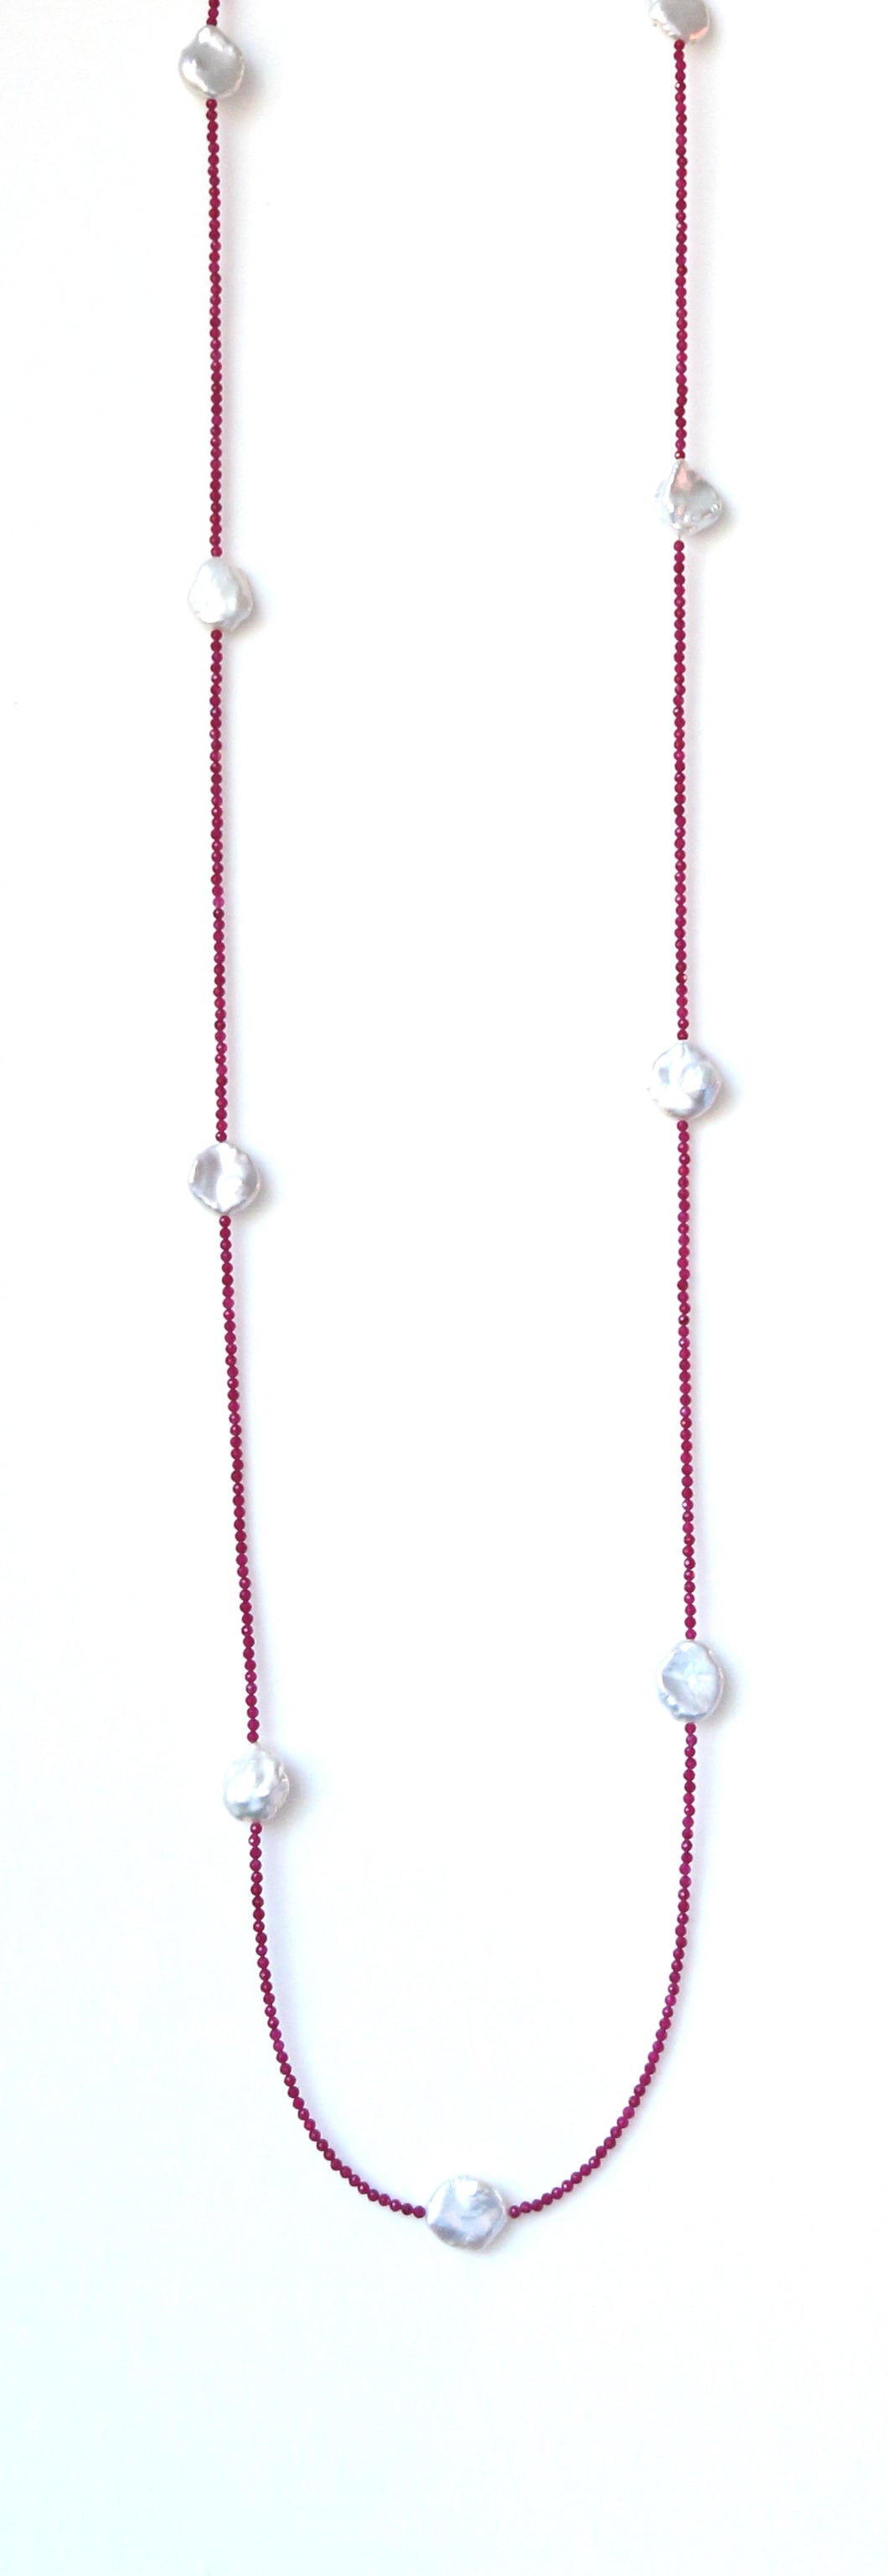 Australian Handmade Pink Long Necklace with Ruby and Baroque Pearls